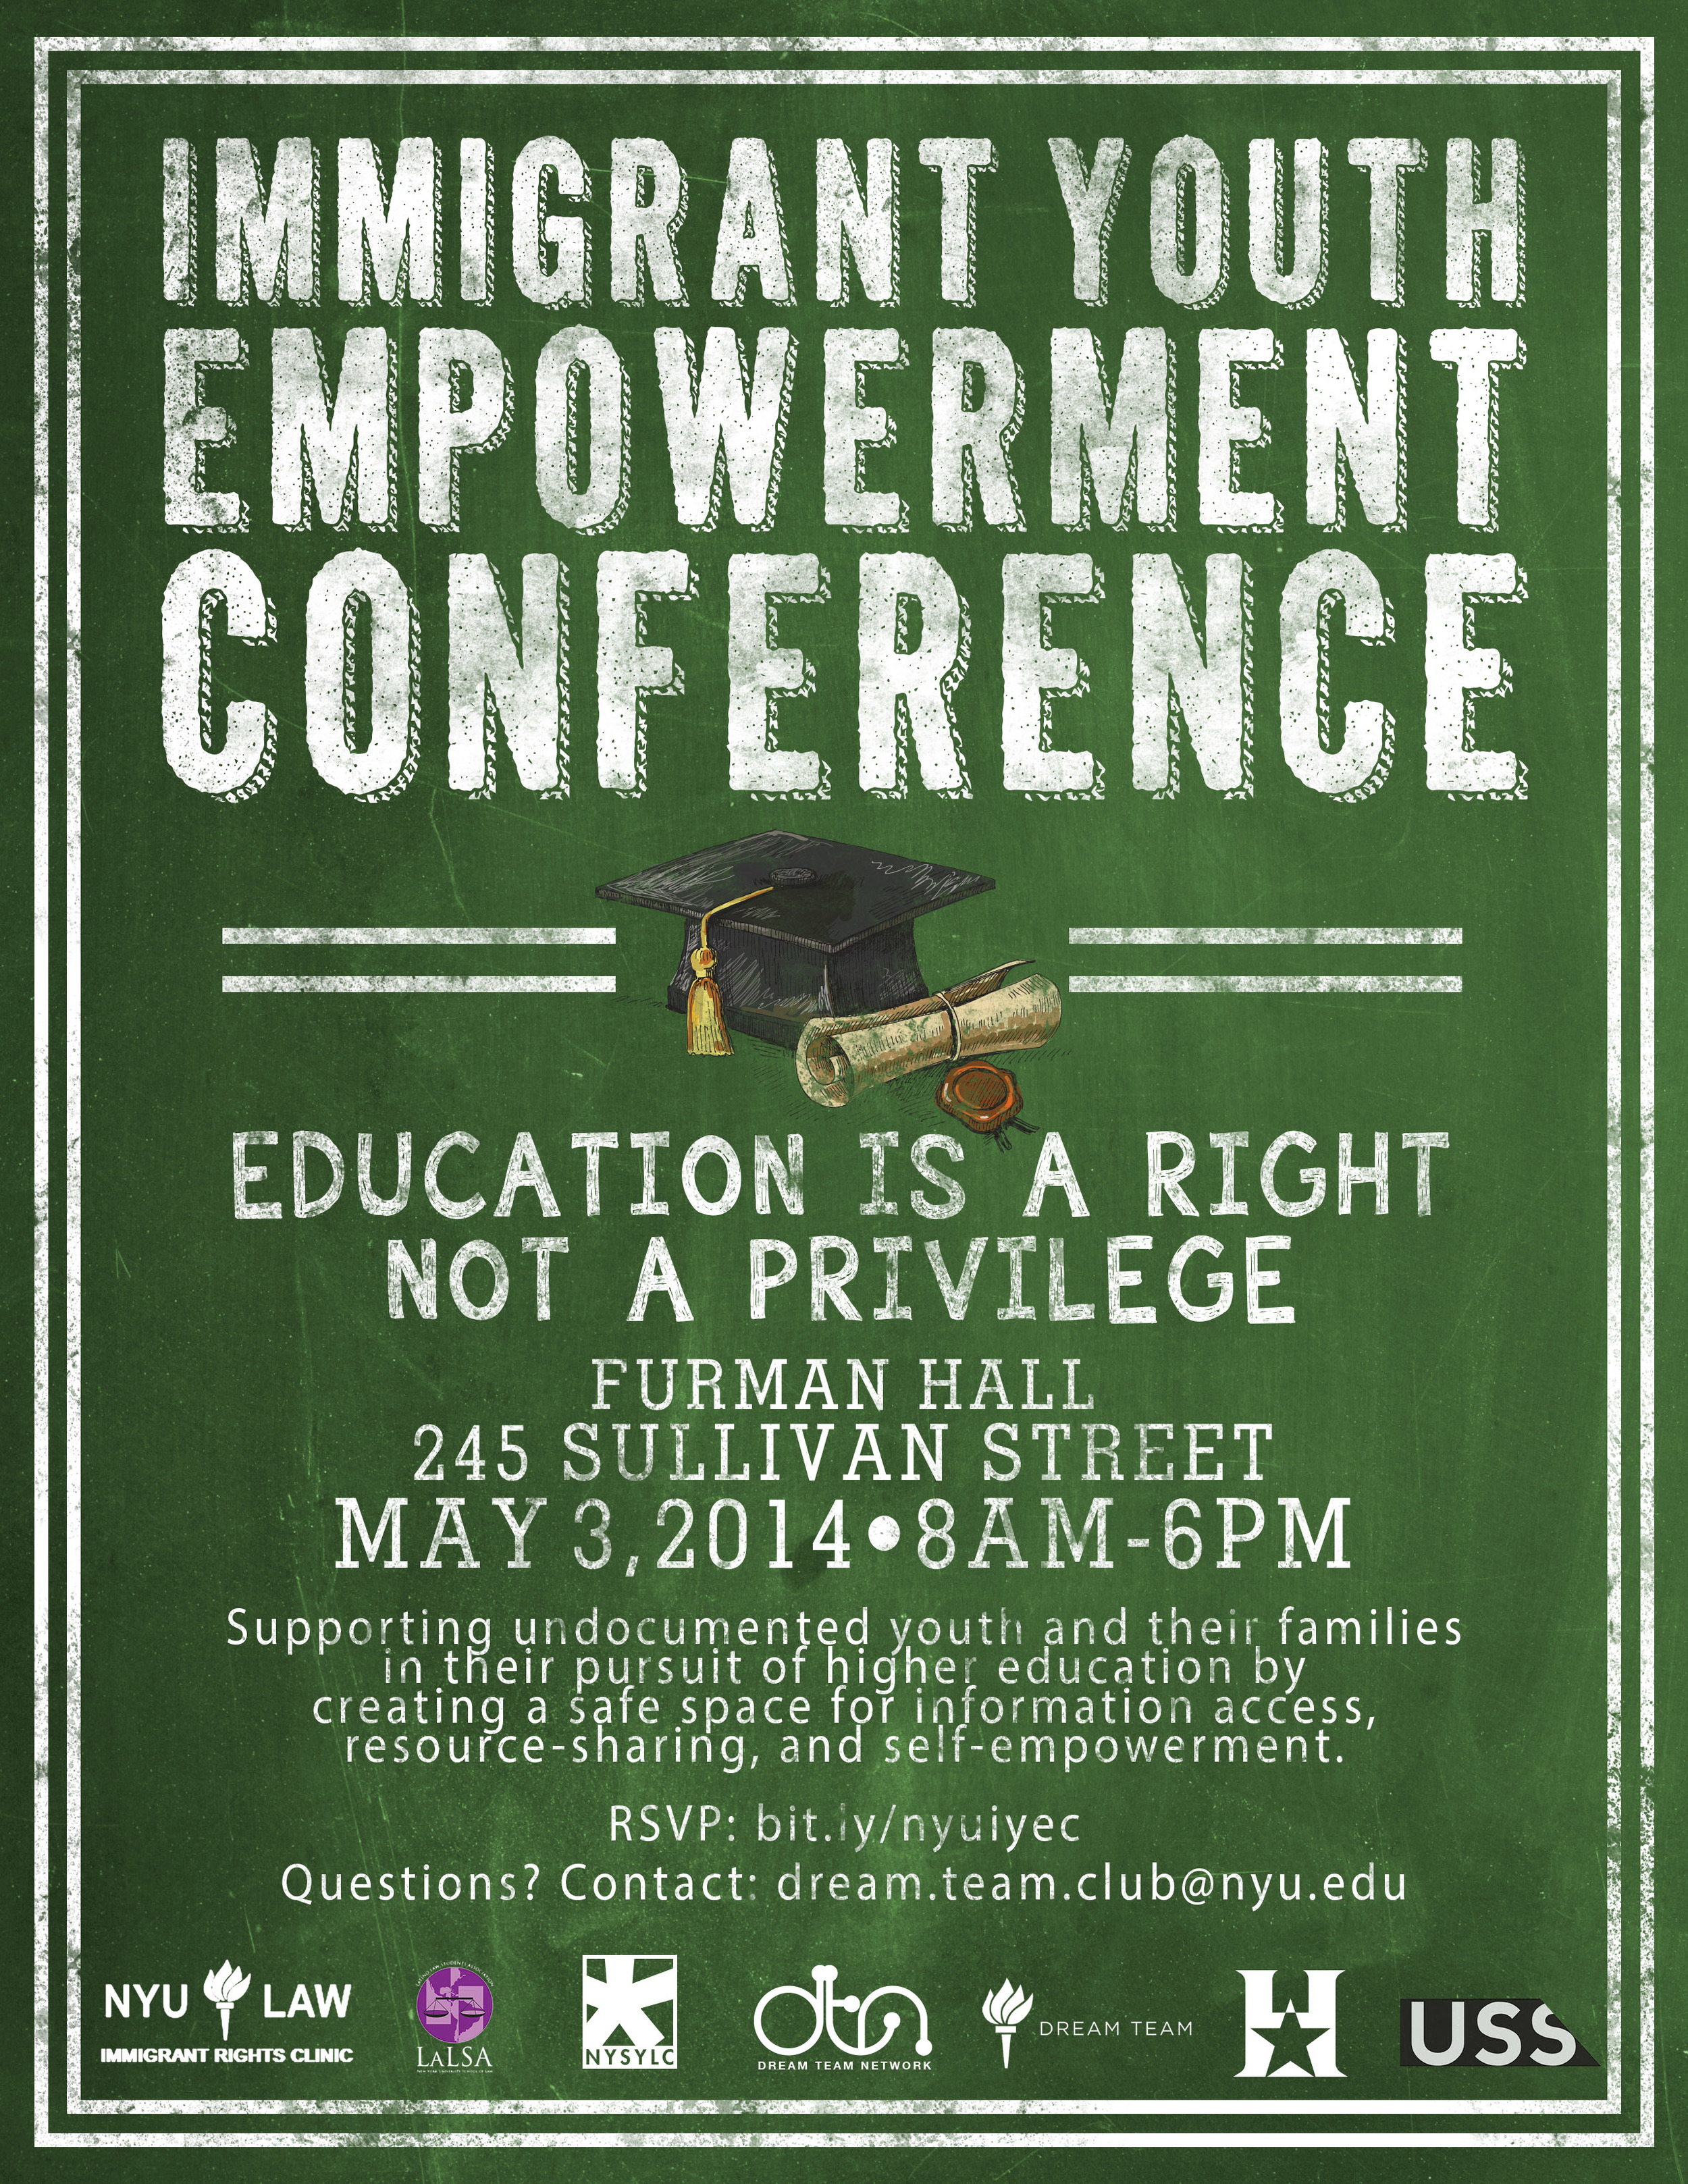 Immigrant Youth Empowerment Conference Spring 2014.jpg